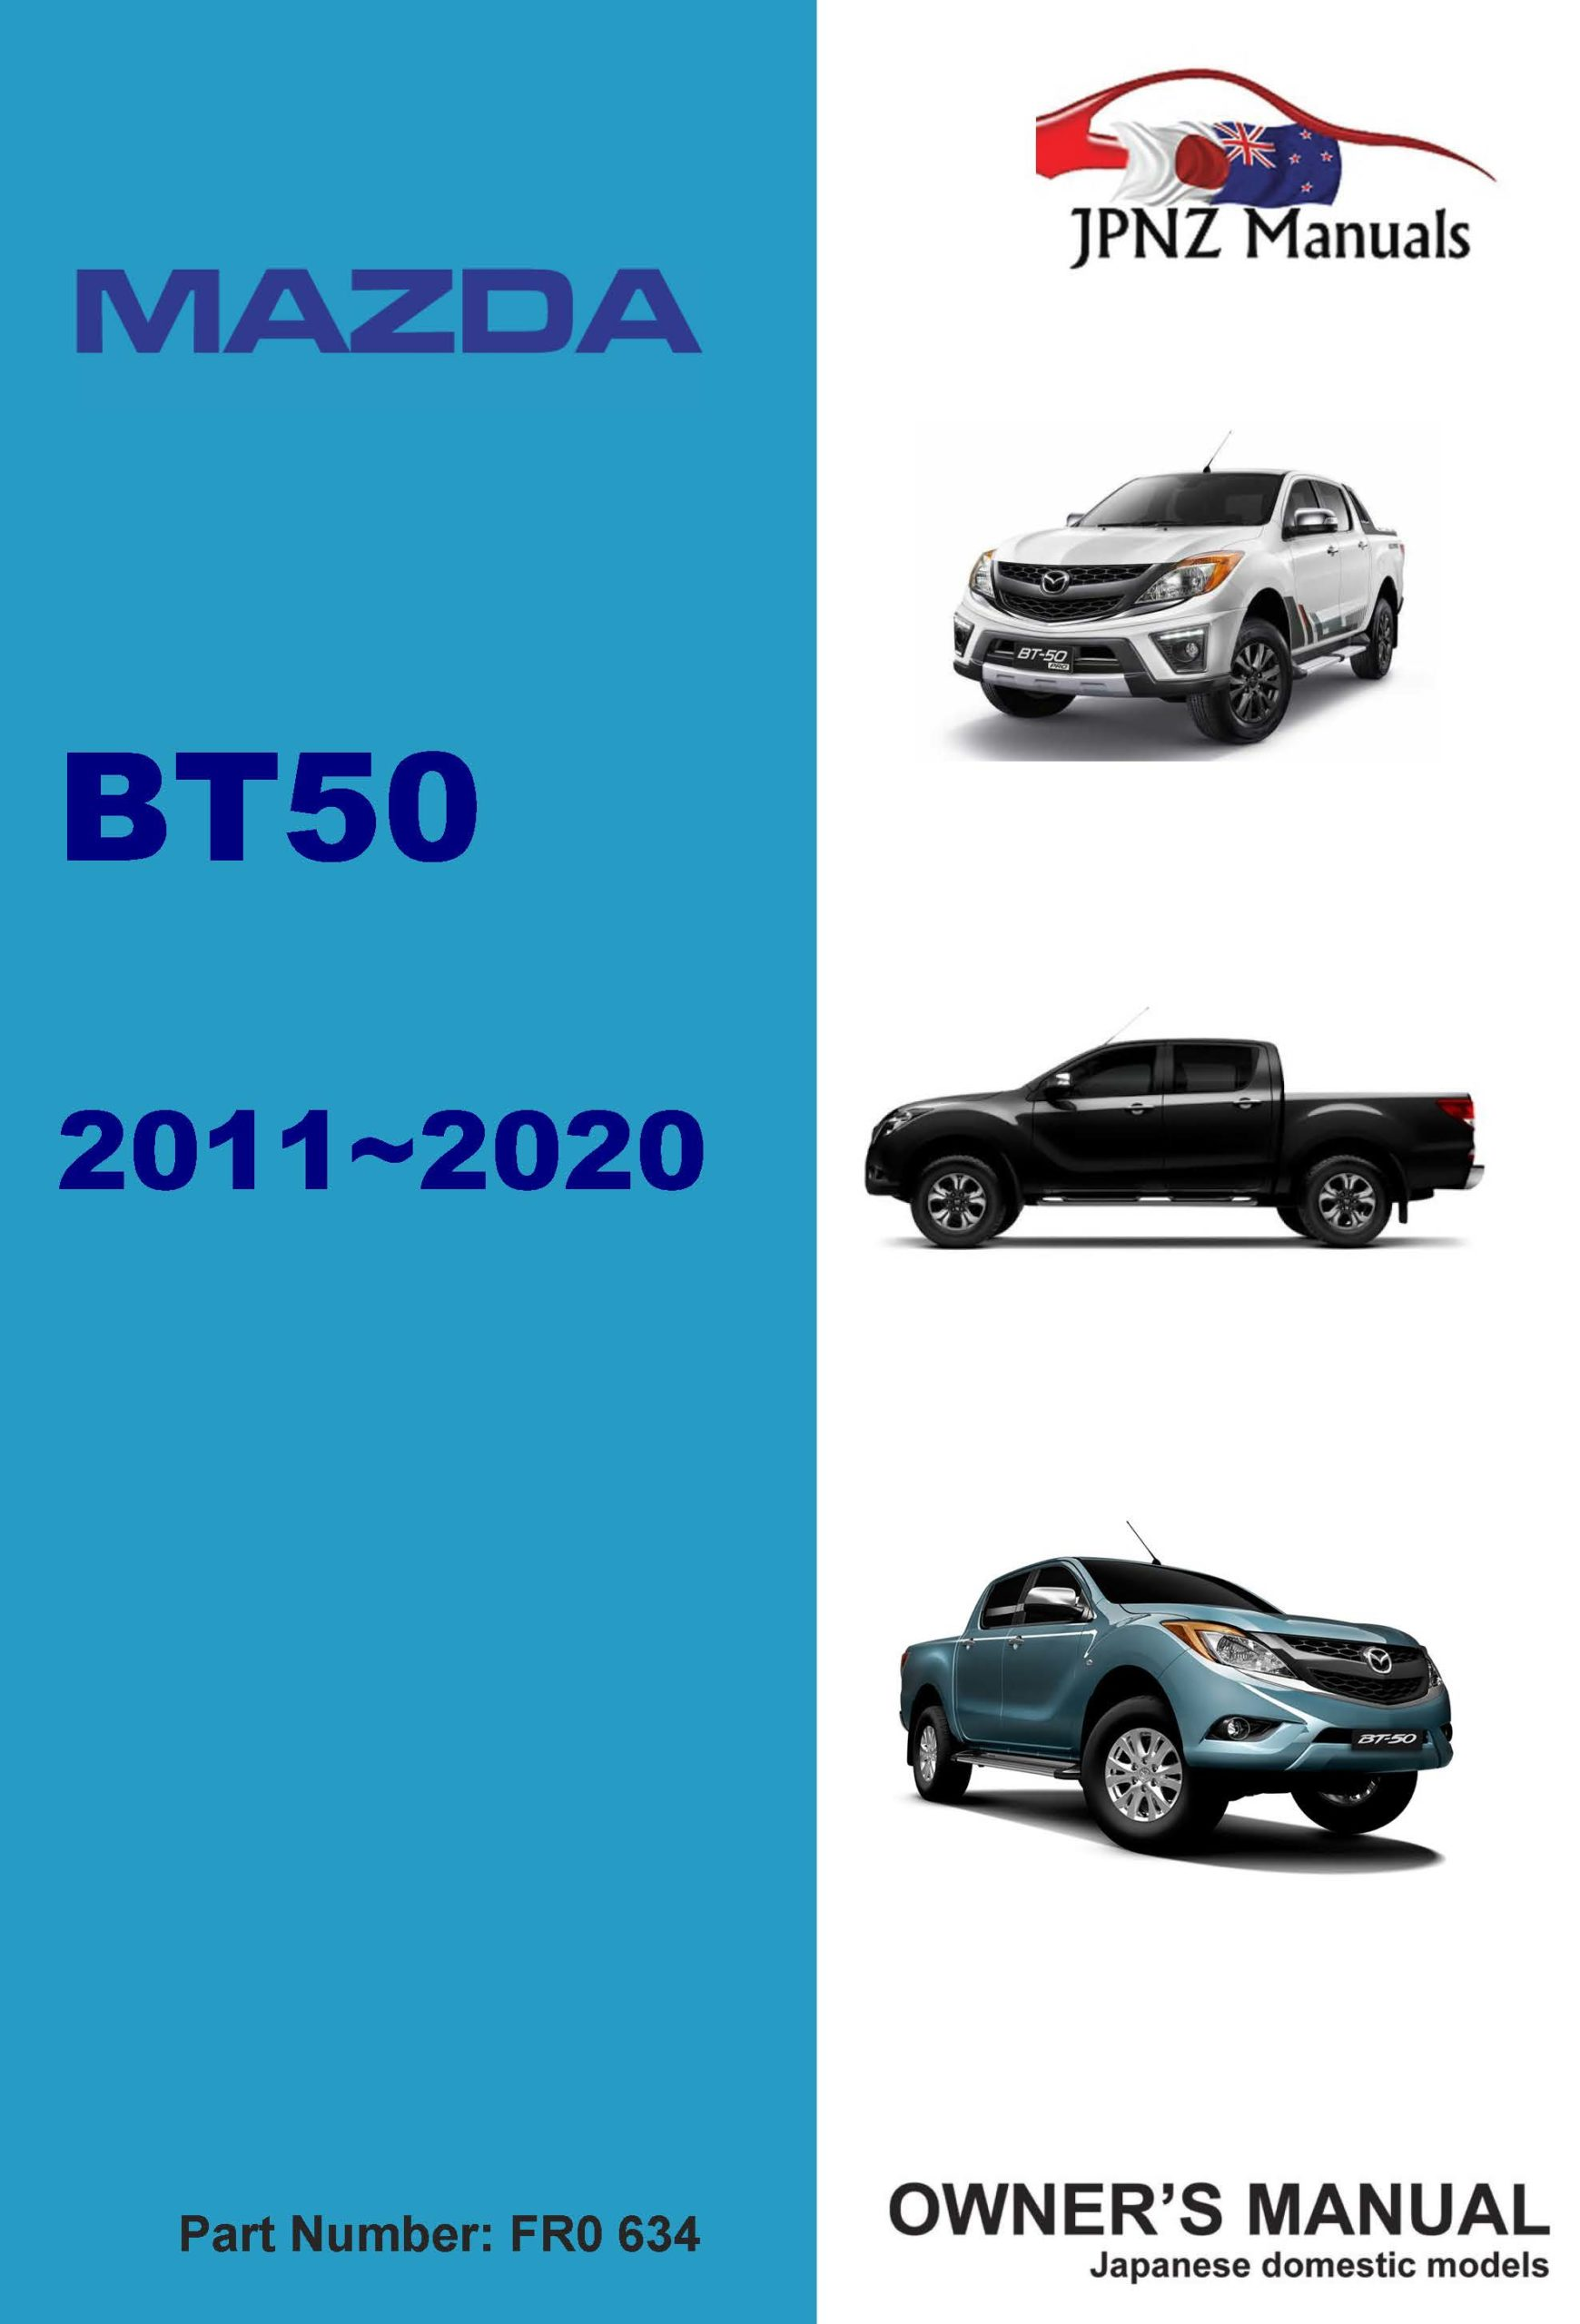 Mazda - BT50 car owners user manual in English | 2011 - 2020